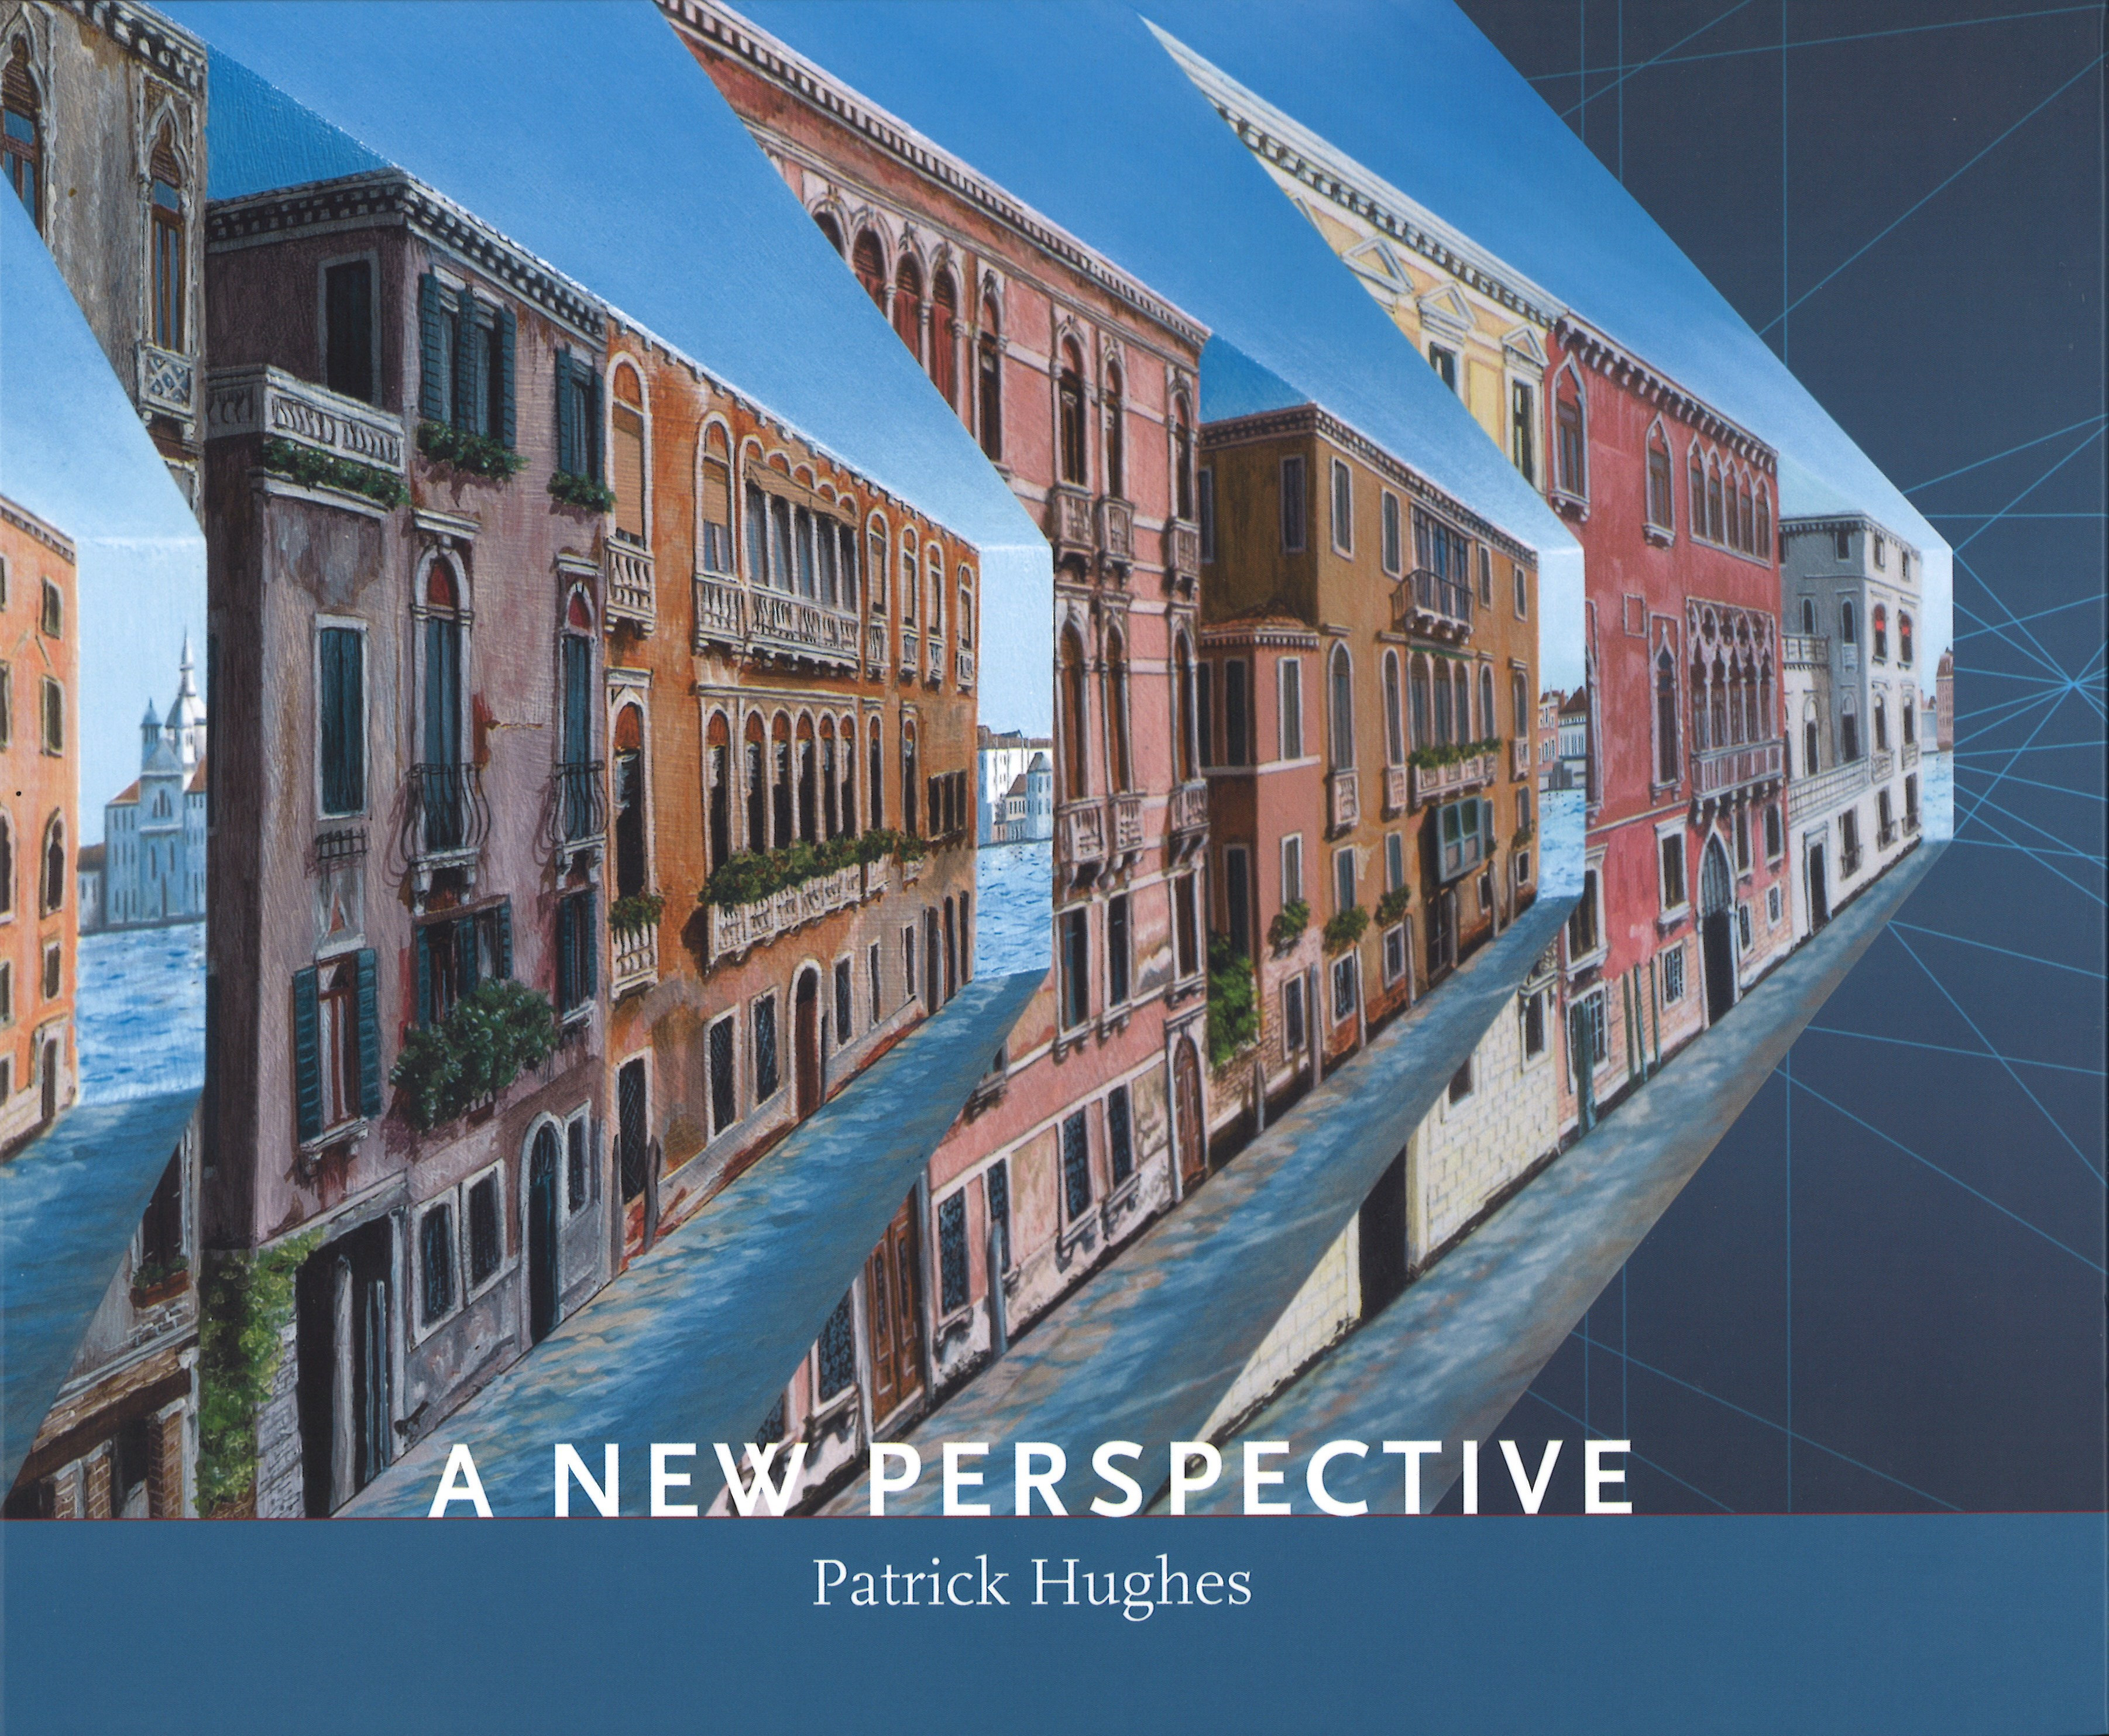 A New Perspective: Patrick Hughes